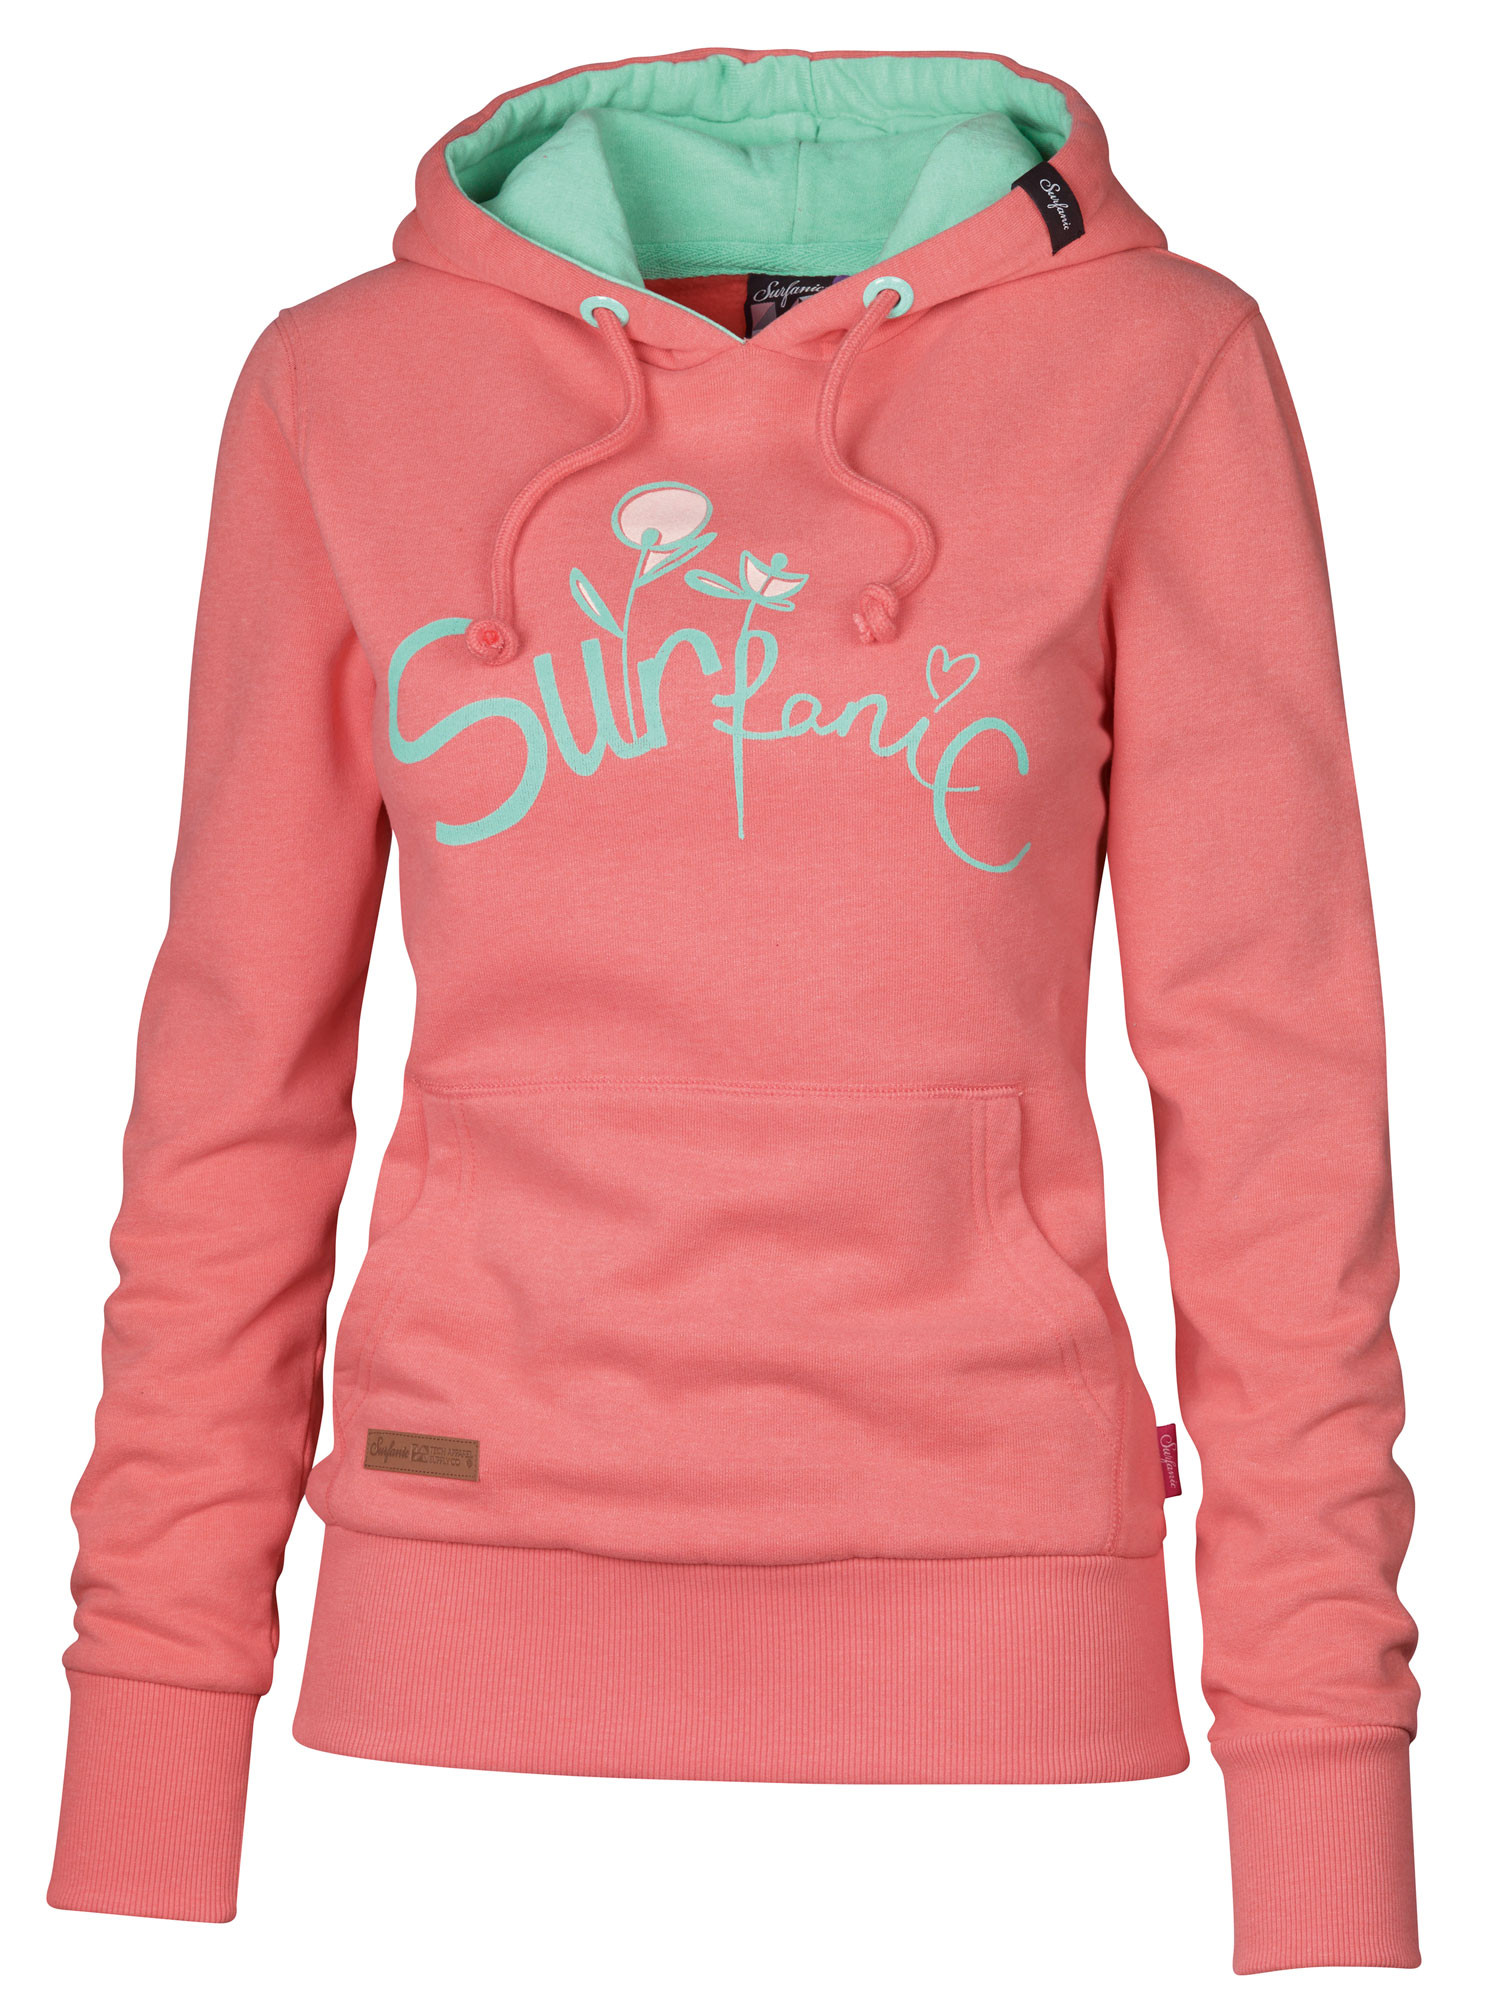 New Surfanic Womens Oceanside Hoodie Womens Hoody Beach